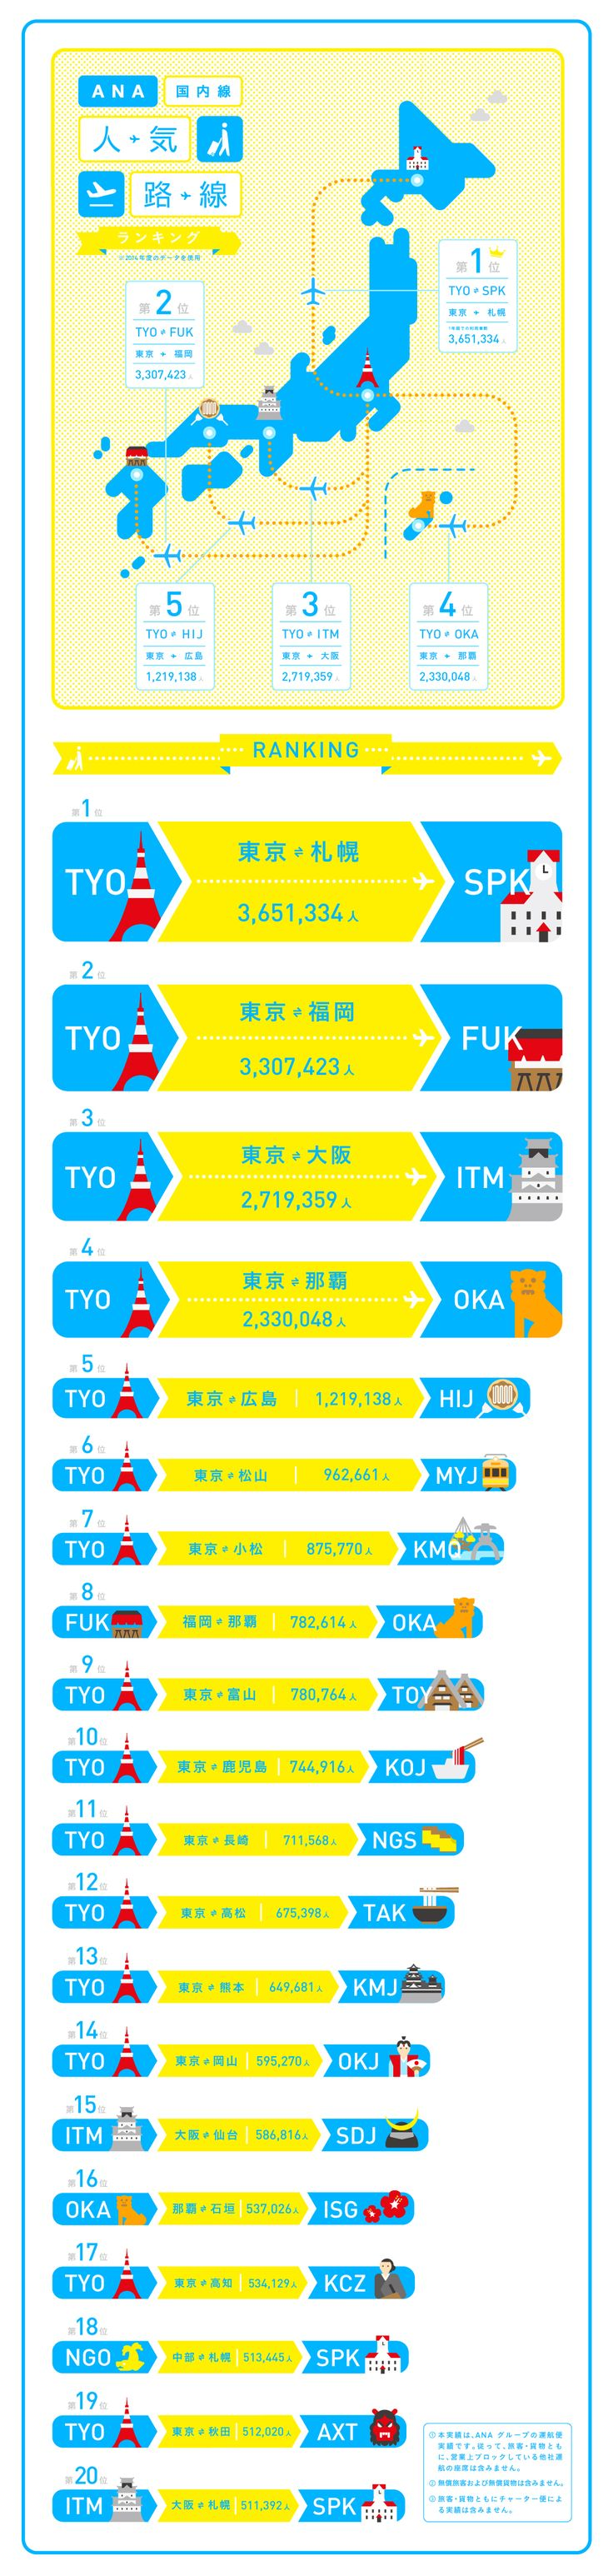 http://www.ana.co.jp/travelandlife/infographics/vol03/